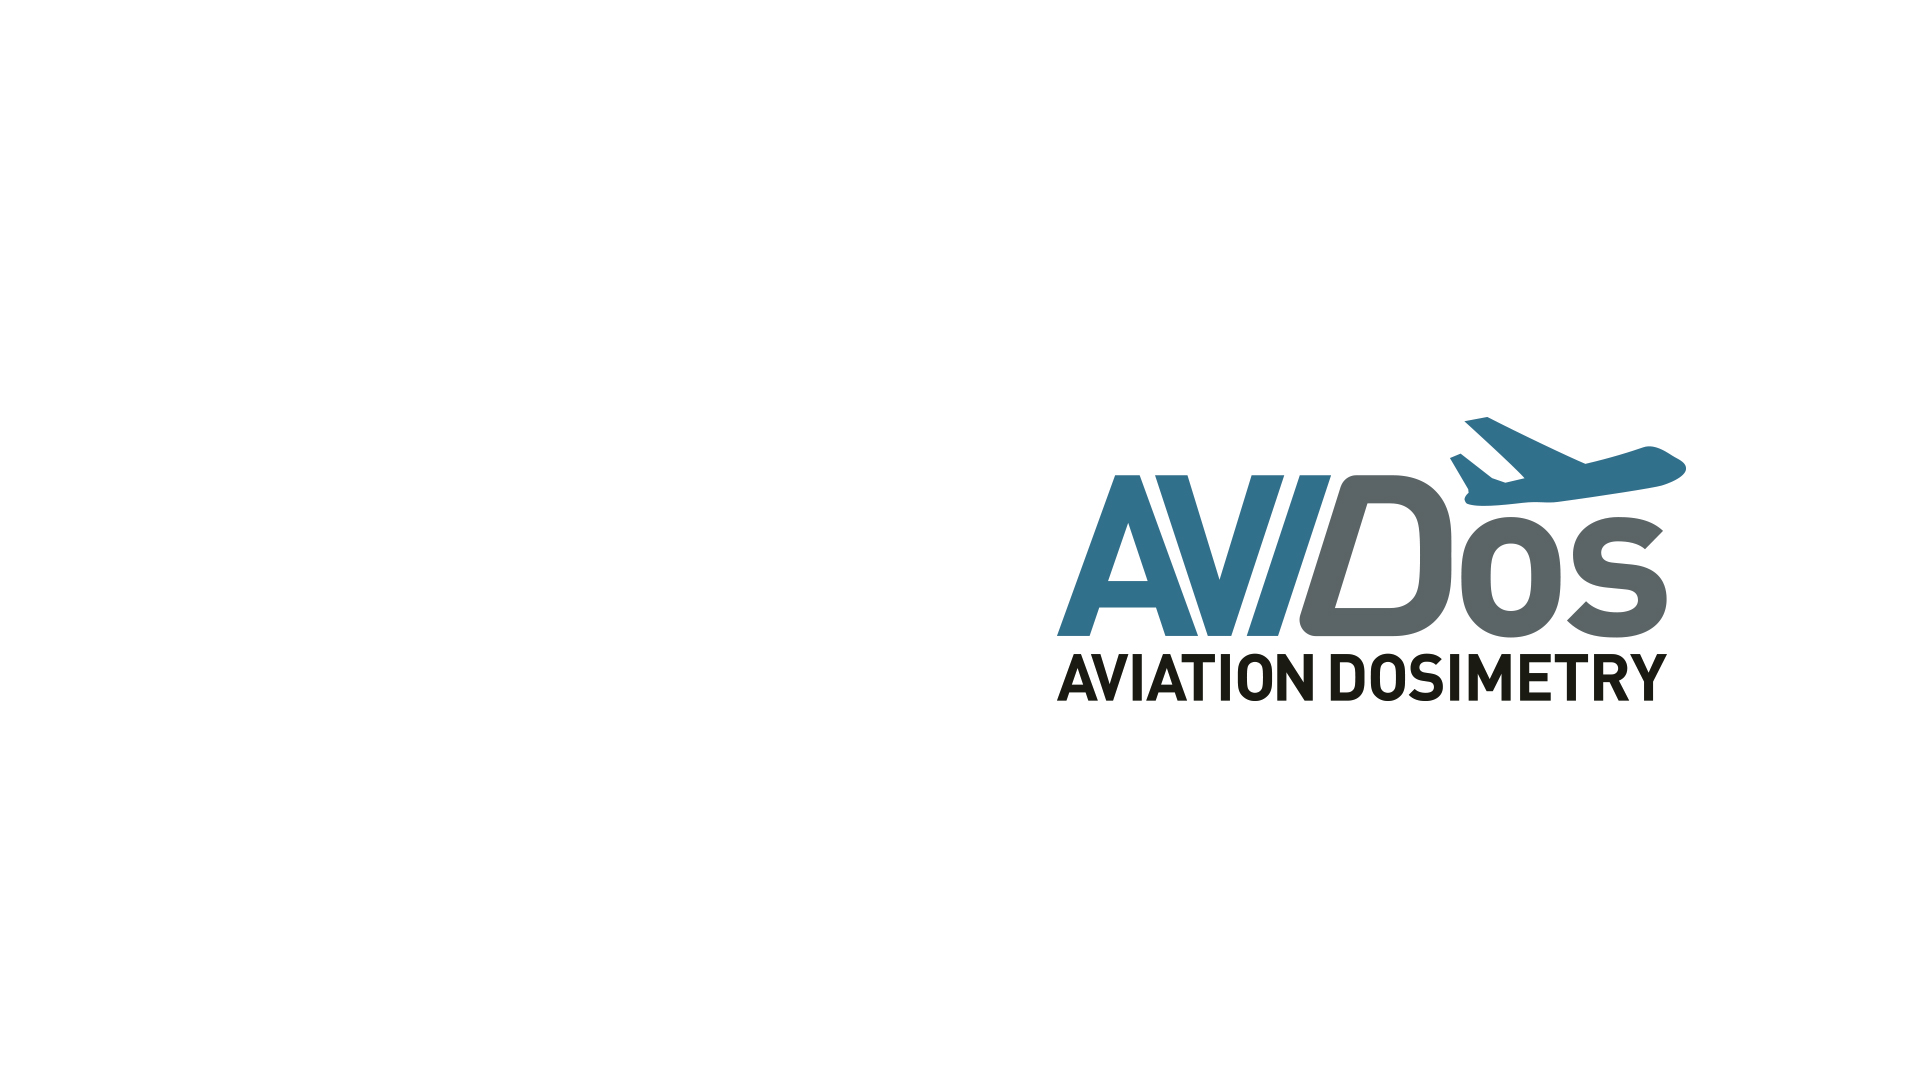 AVIDOS Aviation Dosimetry - Logo: (c) Seibersdorf Labor GmbH